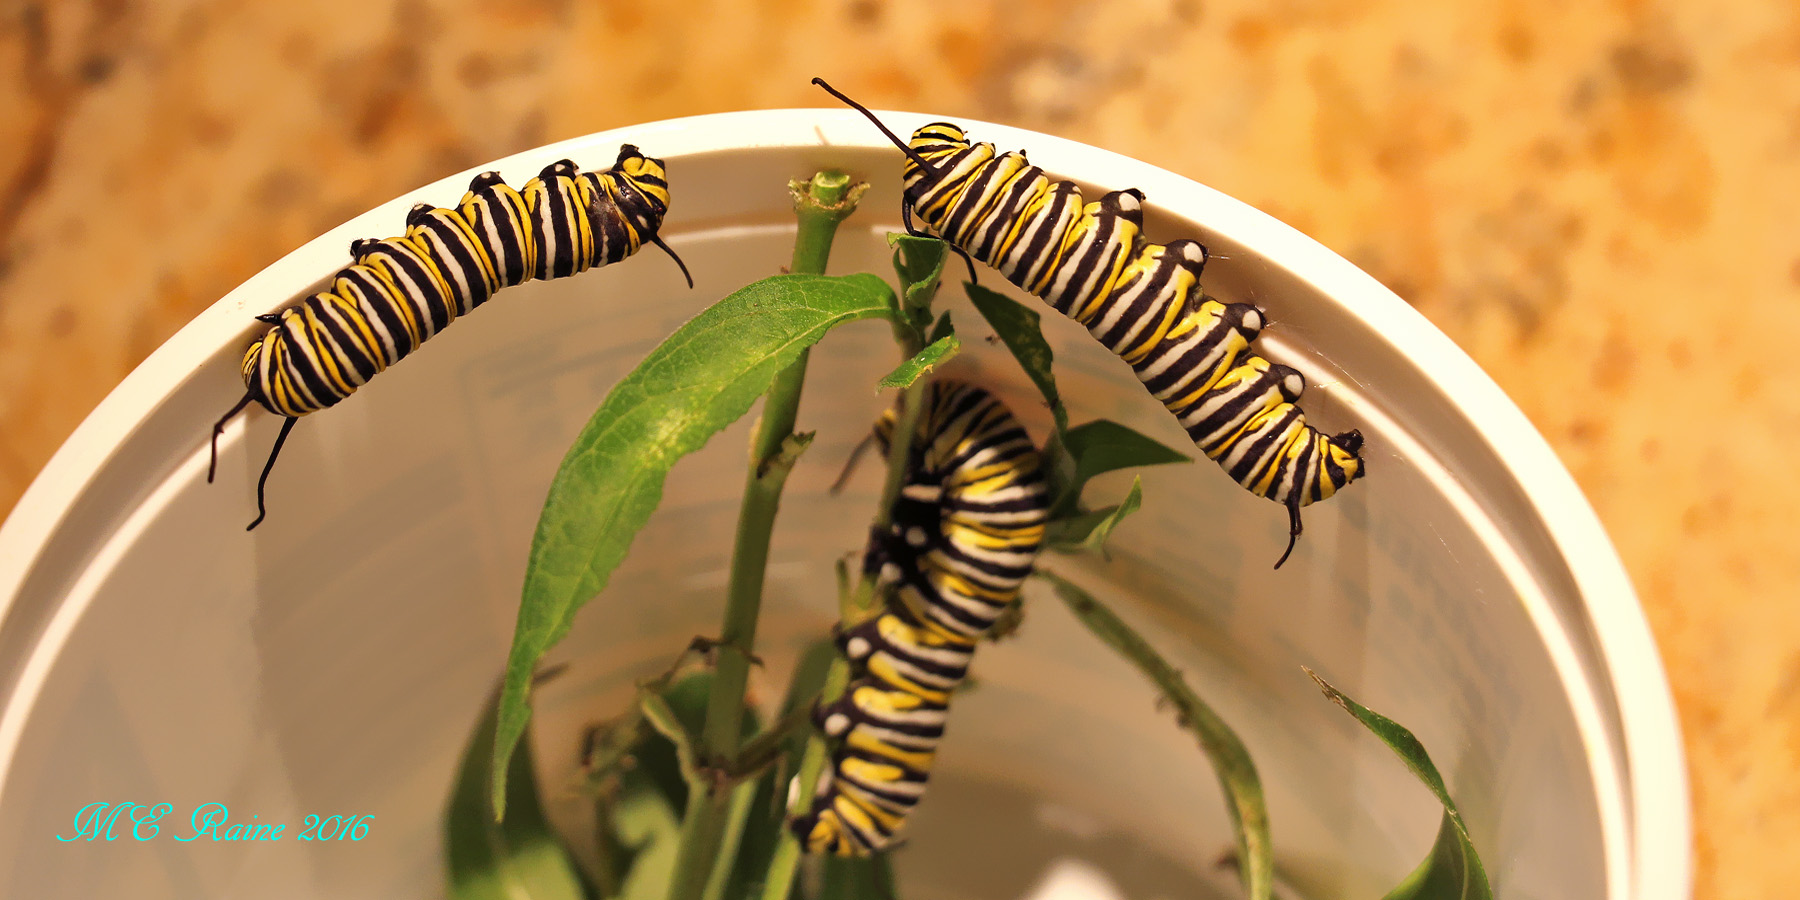 monarch-caterpillars-prpep-nos-1-2-n-3-fr-gsg-090716-6pm-ok-wm-2